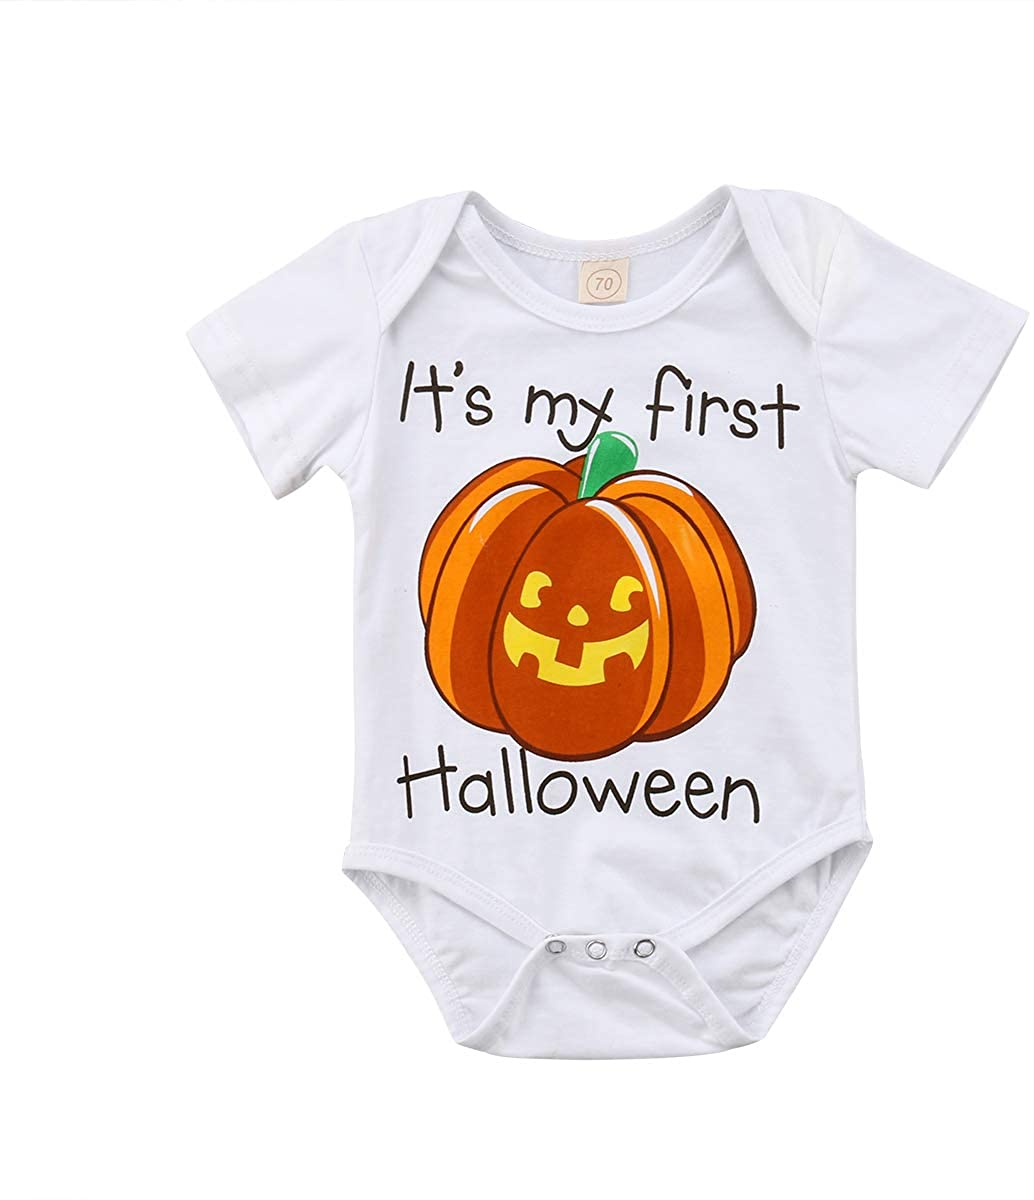 Newborn Baby Girl Boy My First Halloween Bodysuit Romper Short Sleeve Shirt Tops